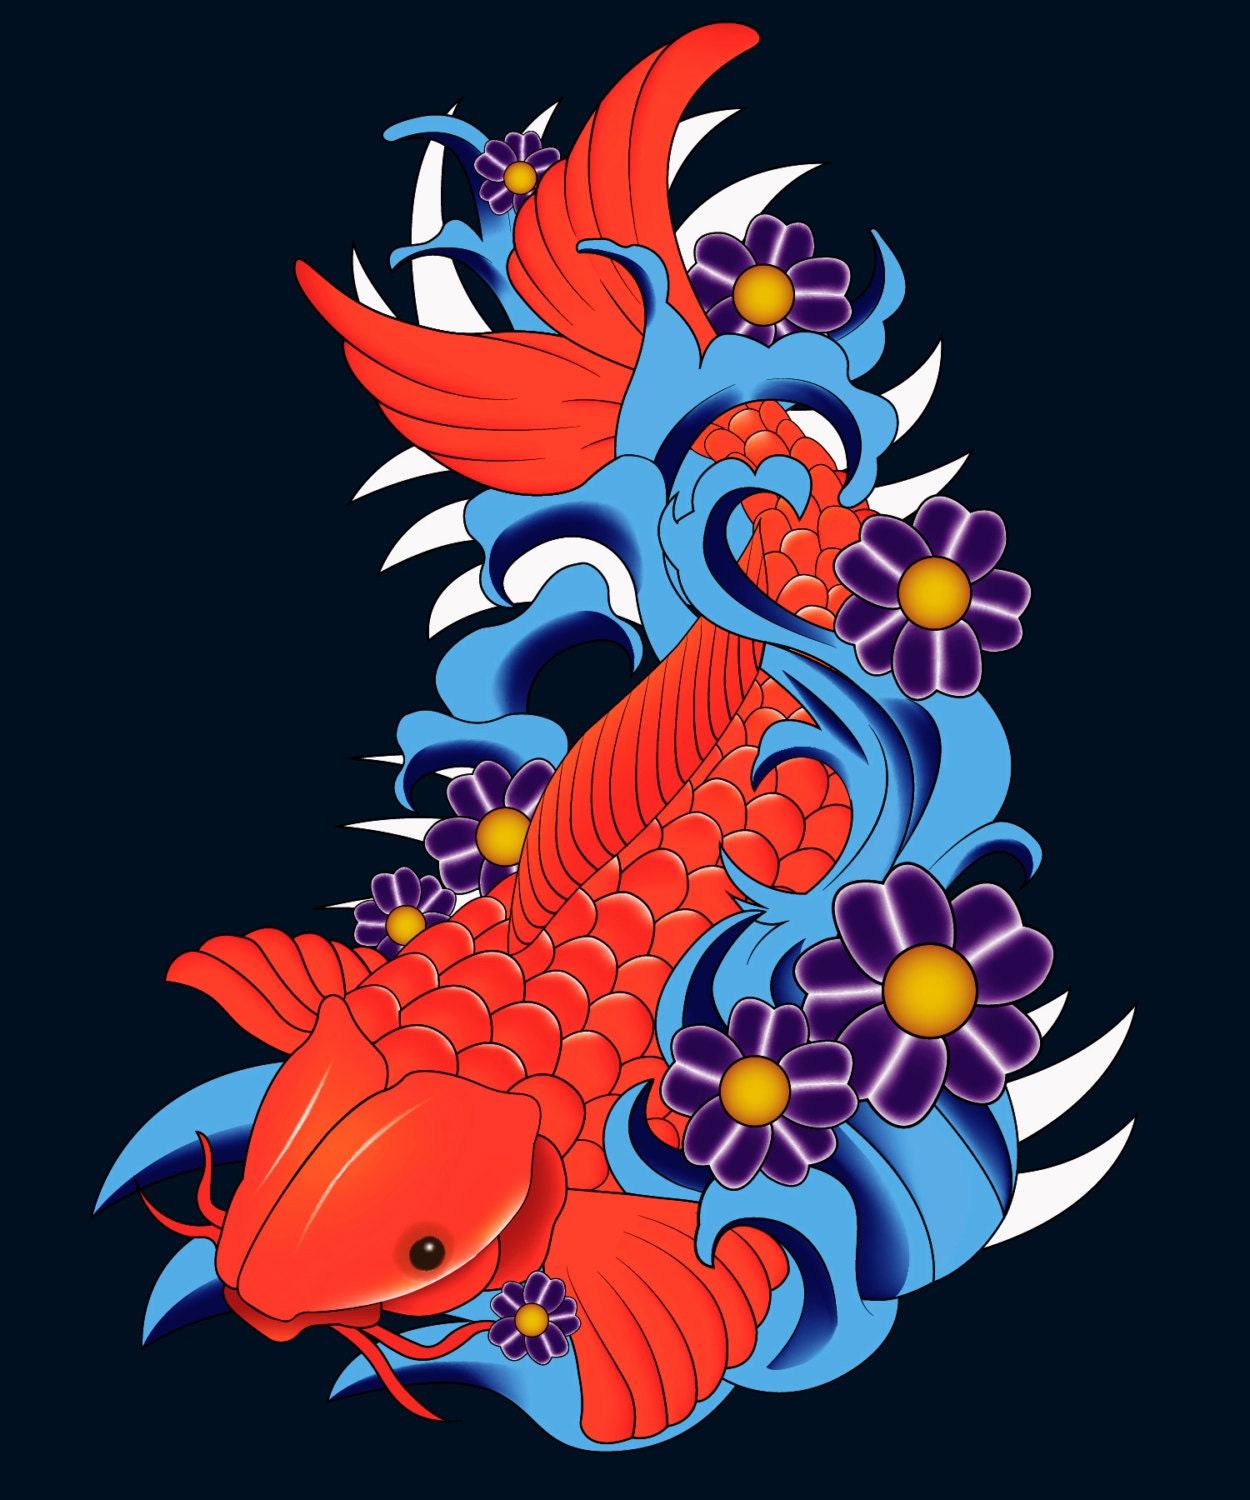 Red koi fish wall decal koi fish wall sticker large koi fish for Koi fish wall stickers